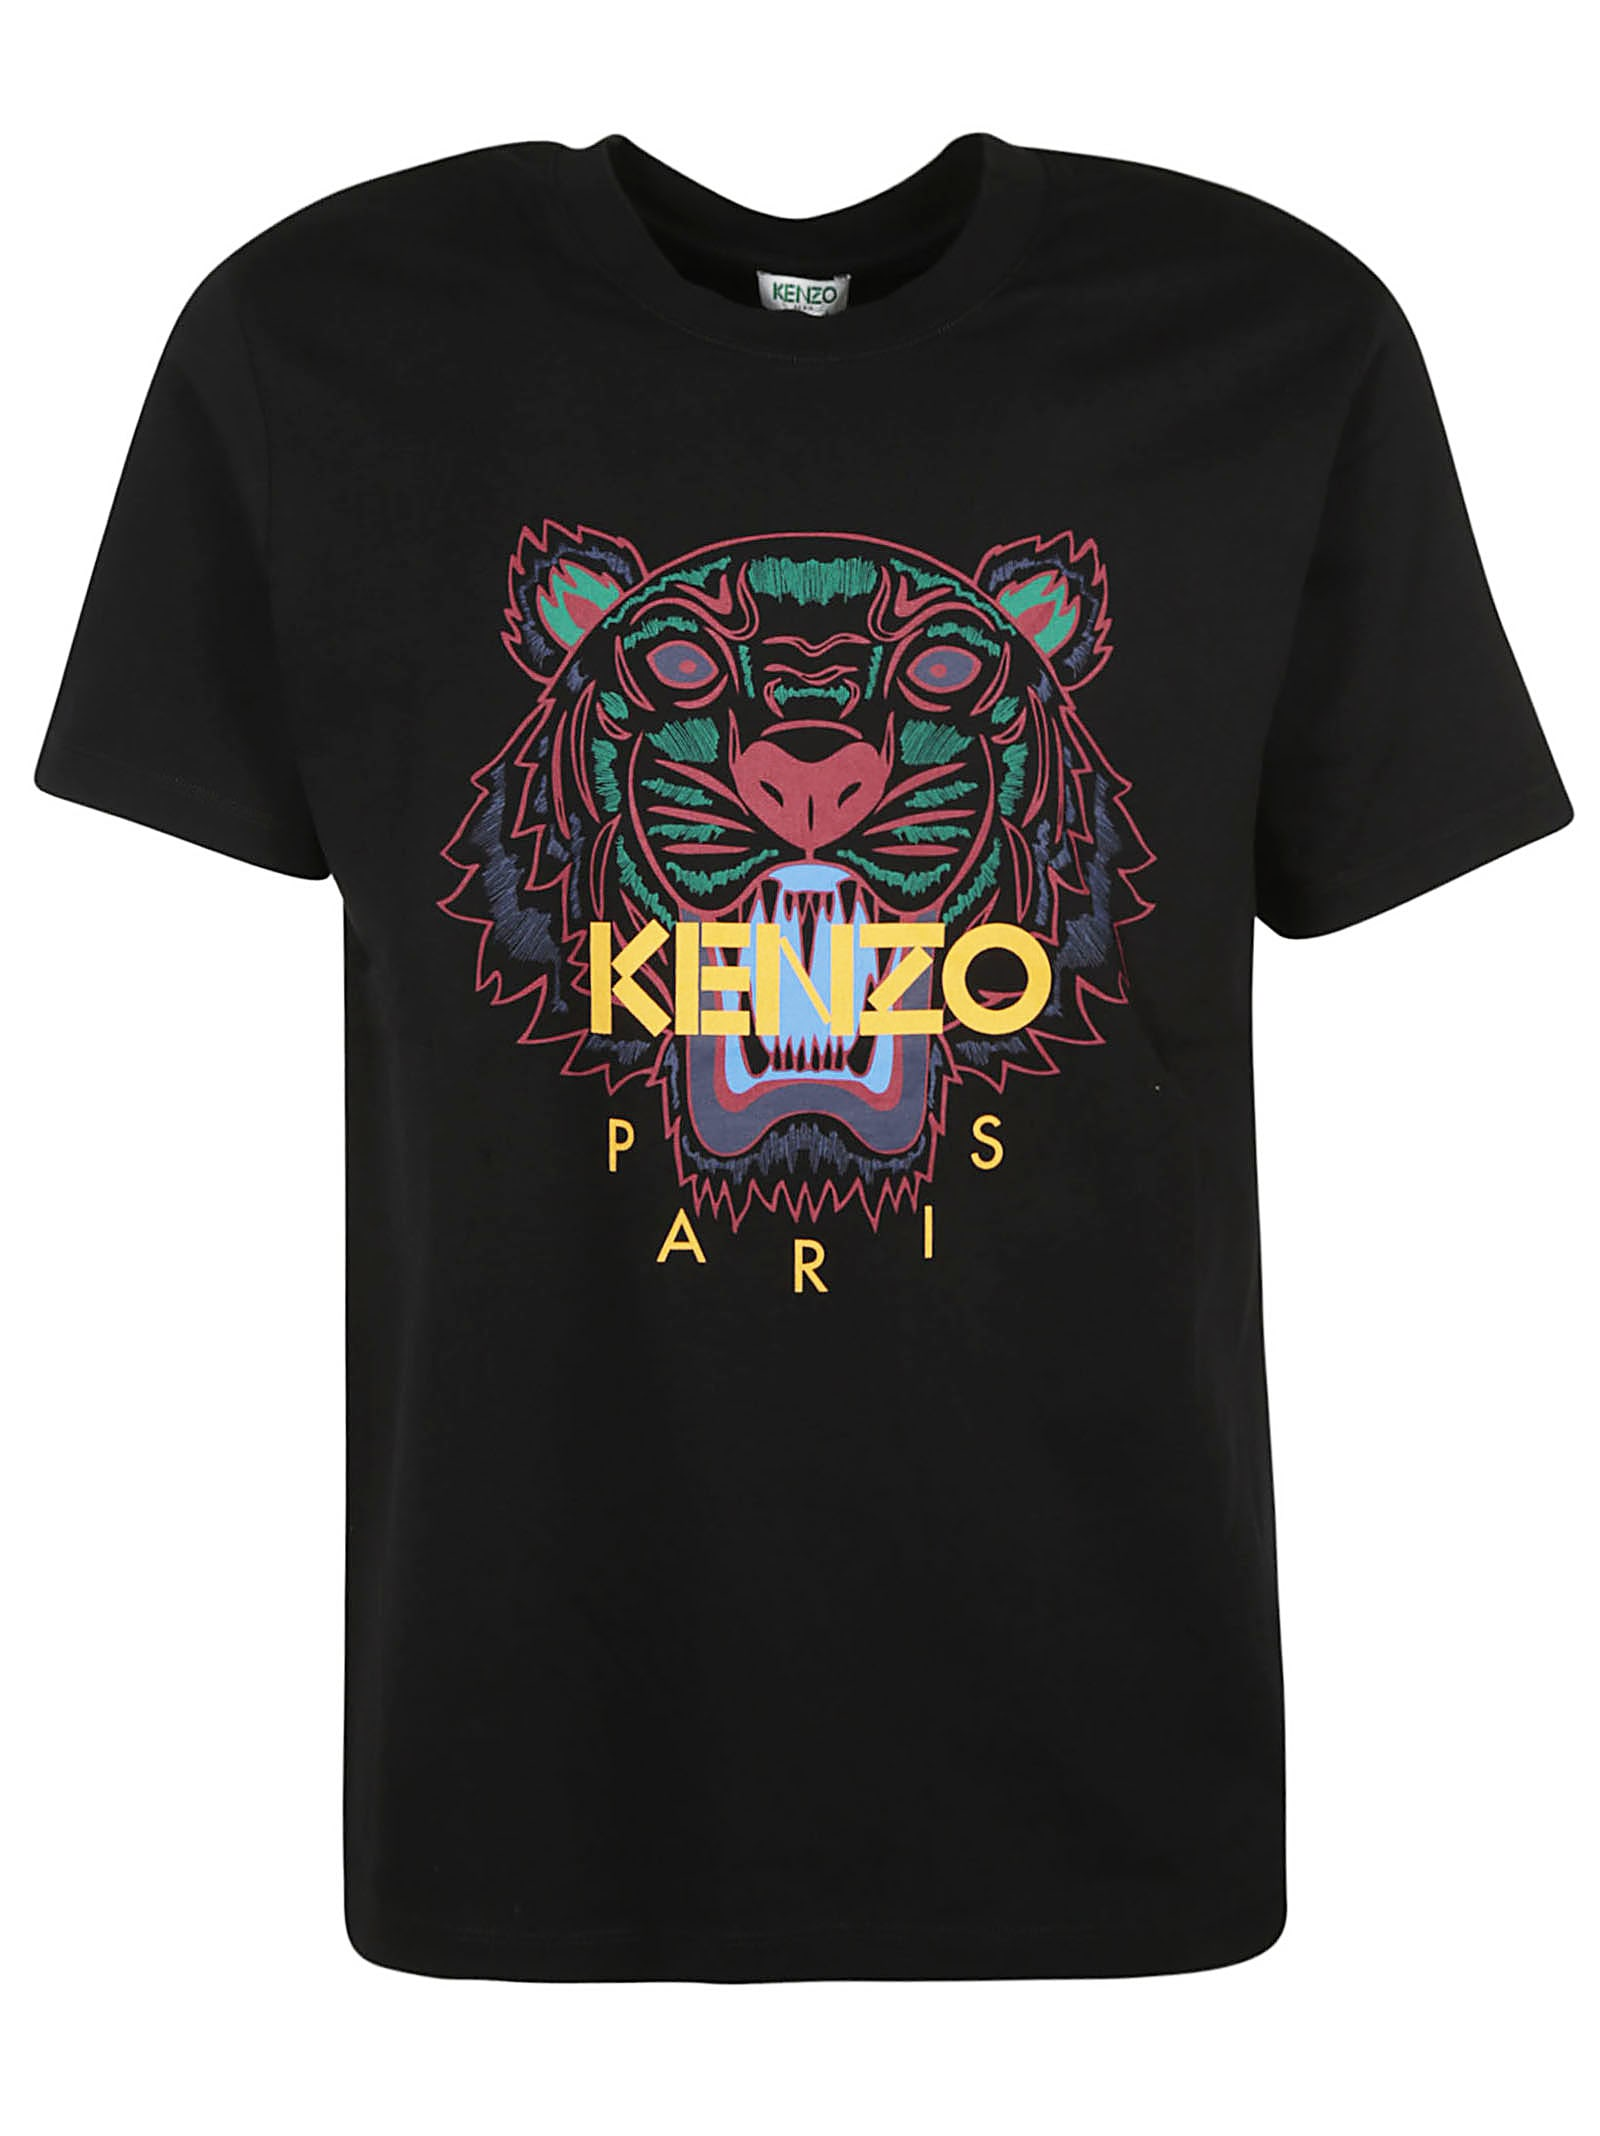 online retailer choose genuine stable quality Kenzo Tiger T-shirt